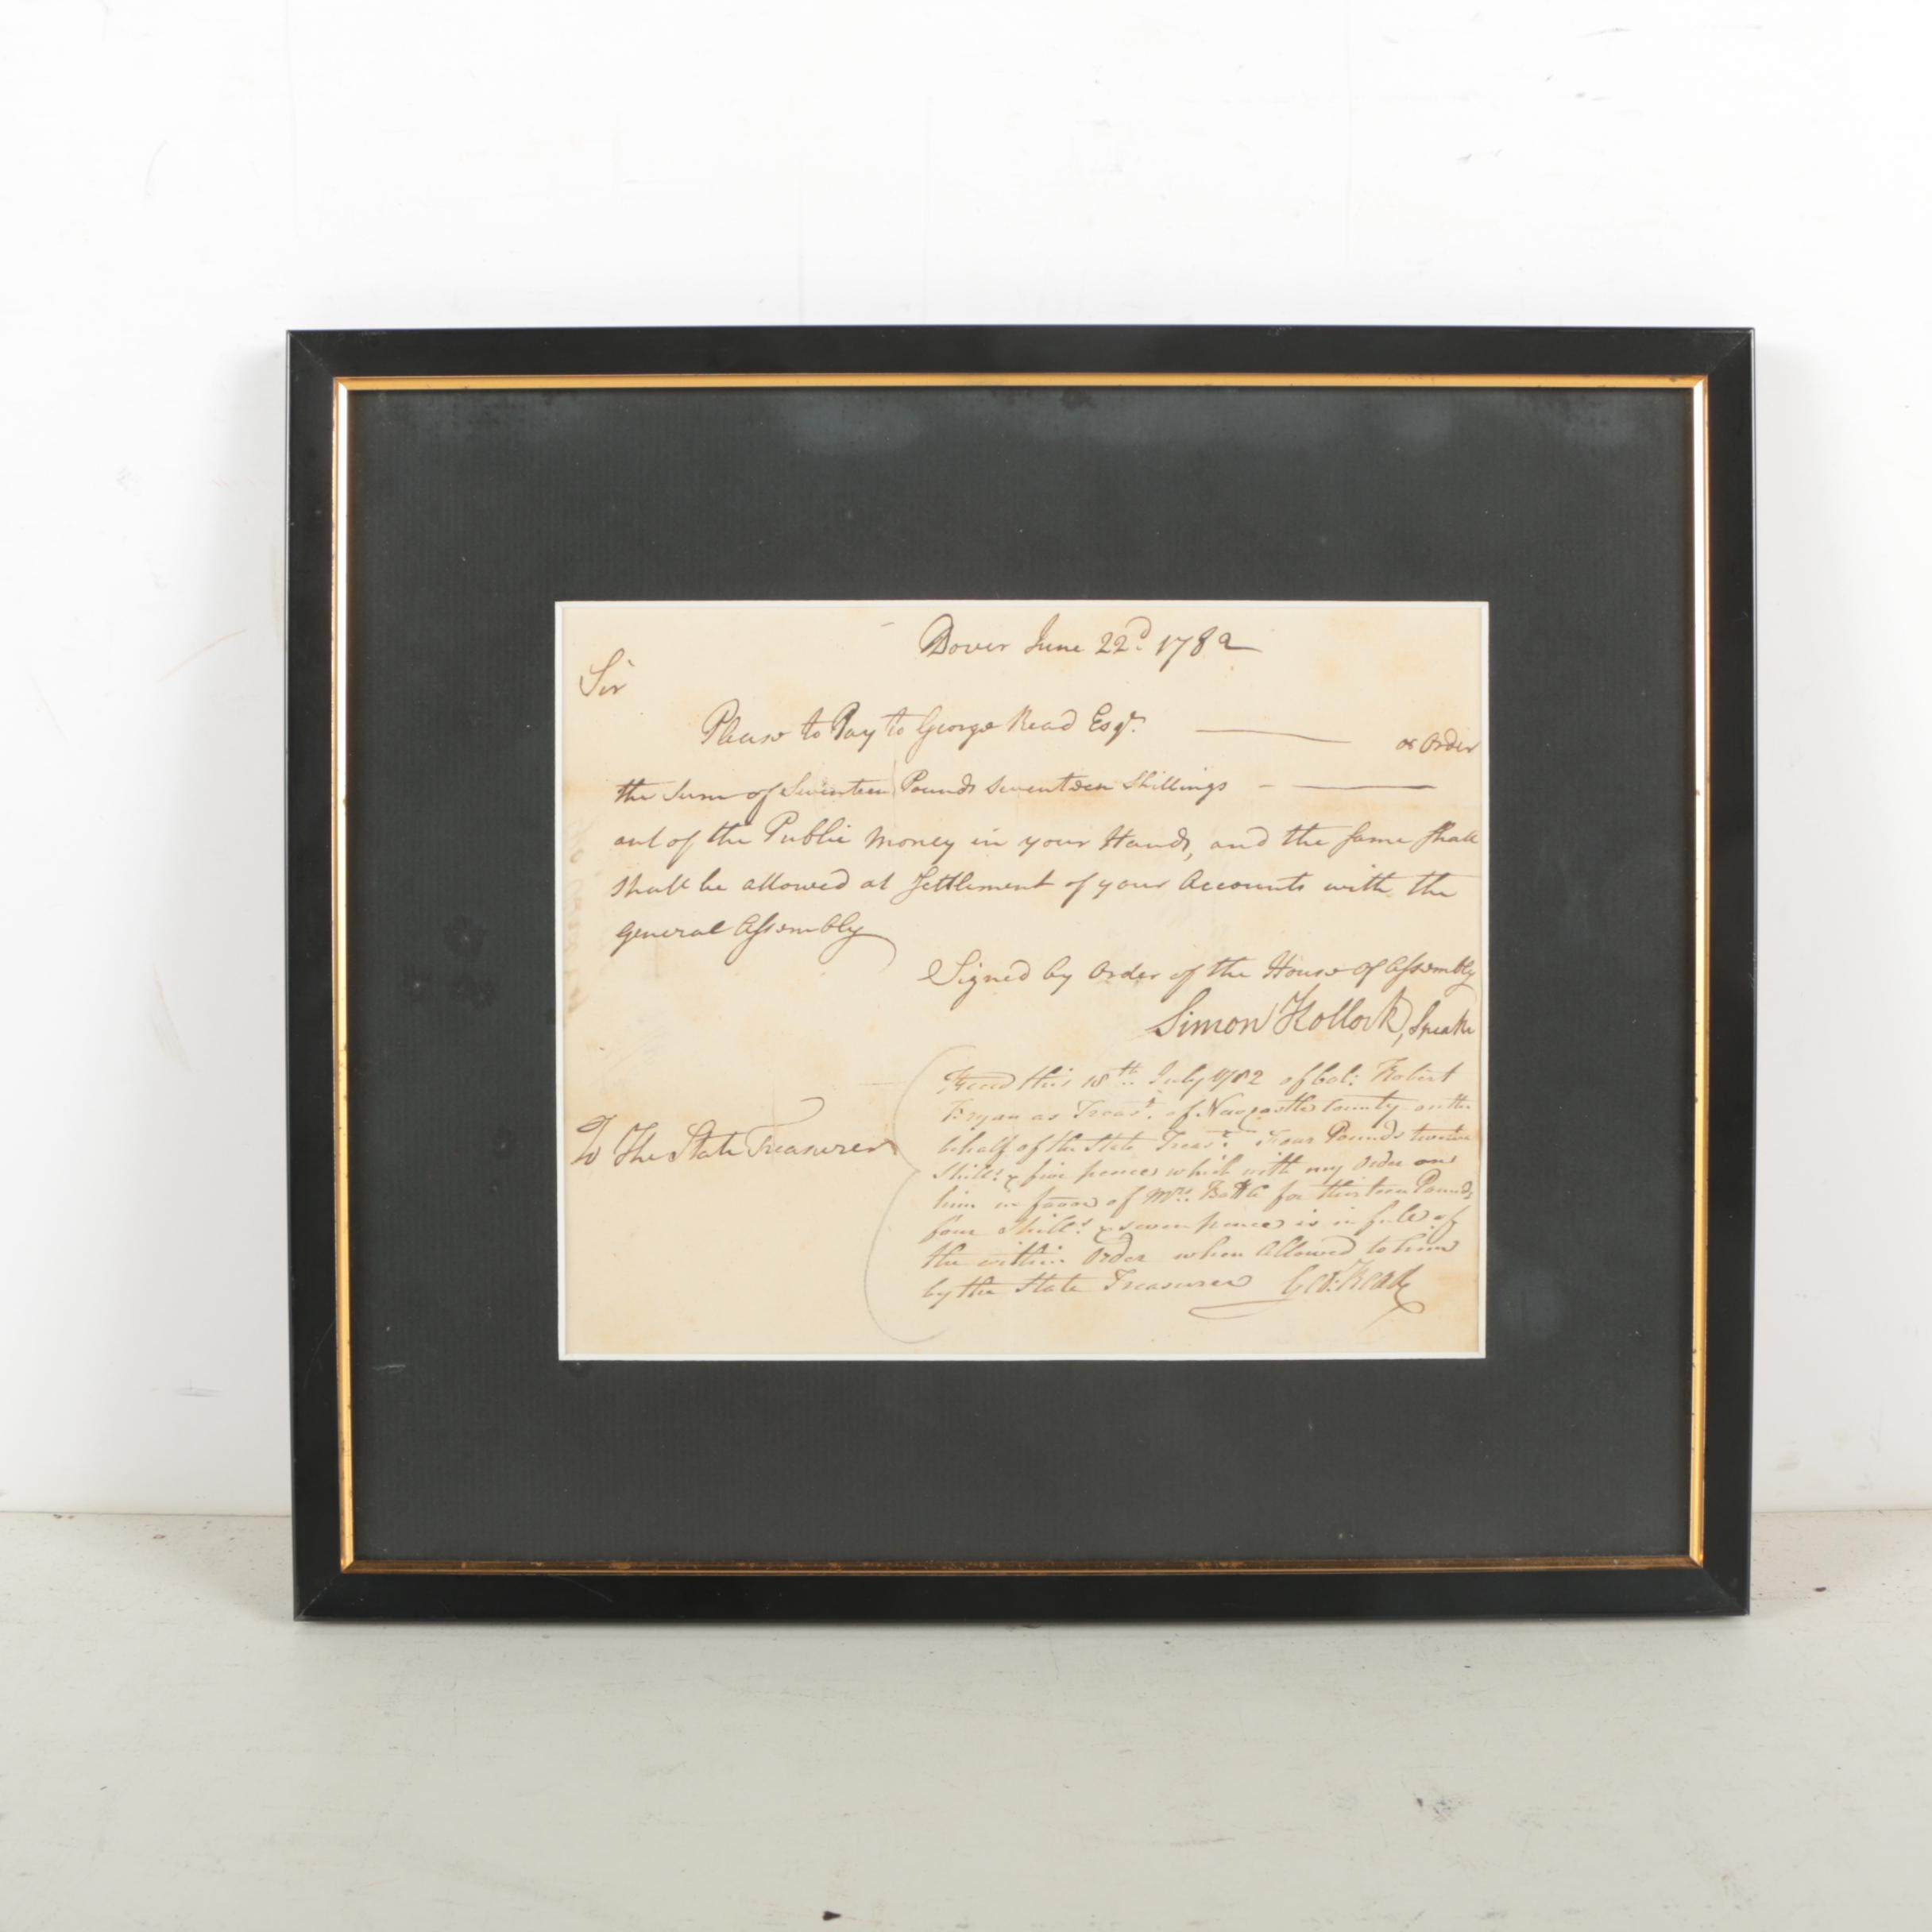 1782 Financial Document Signed by Delaware Patriot George Read